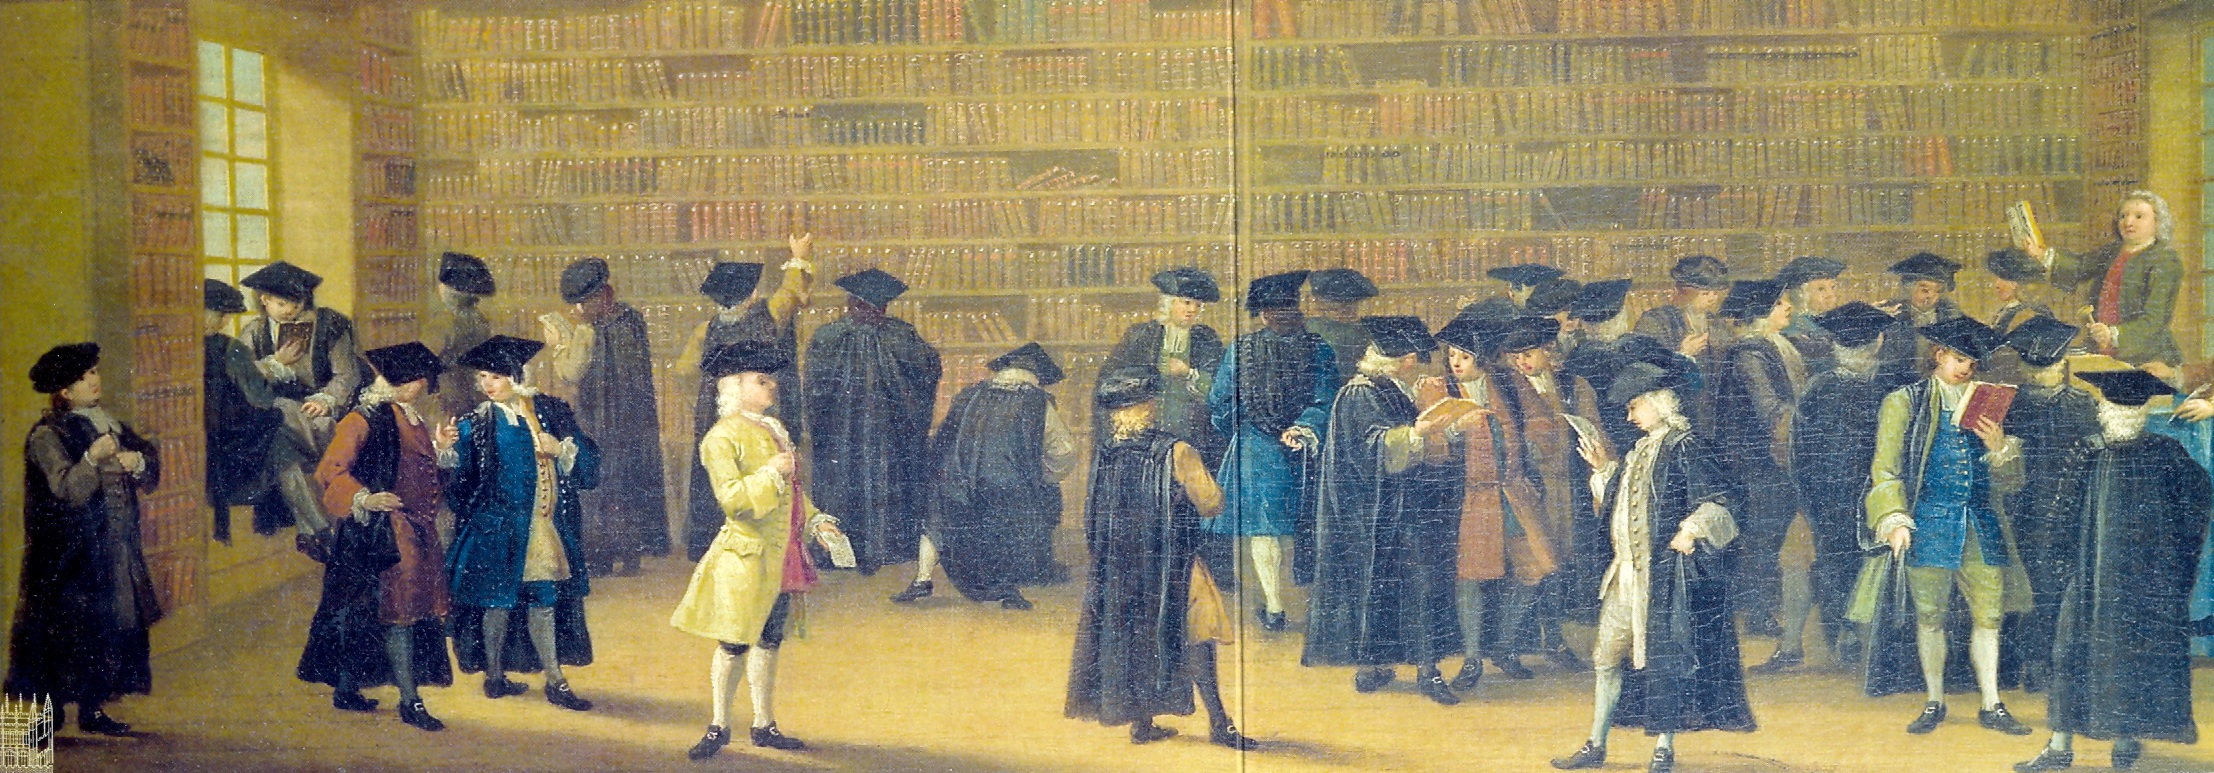 Image of busy book auction, Oxford, 1747.